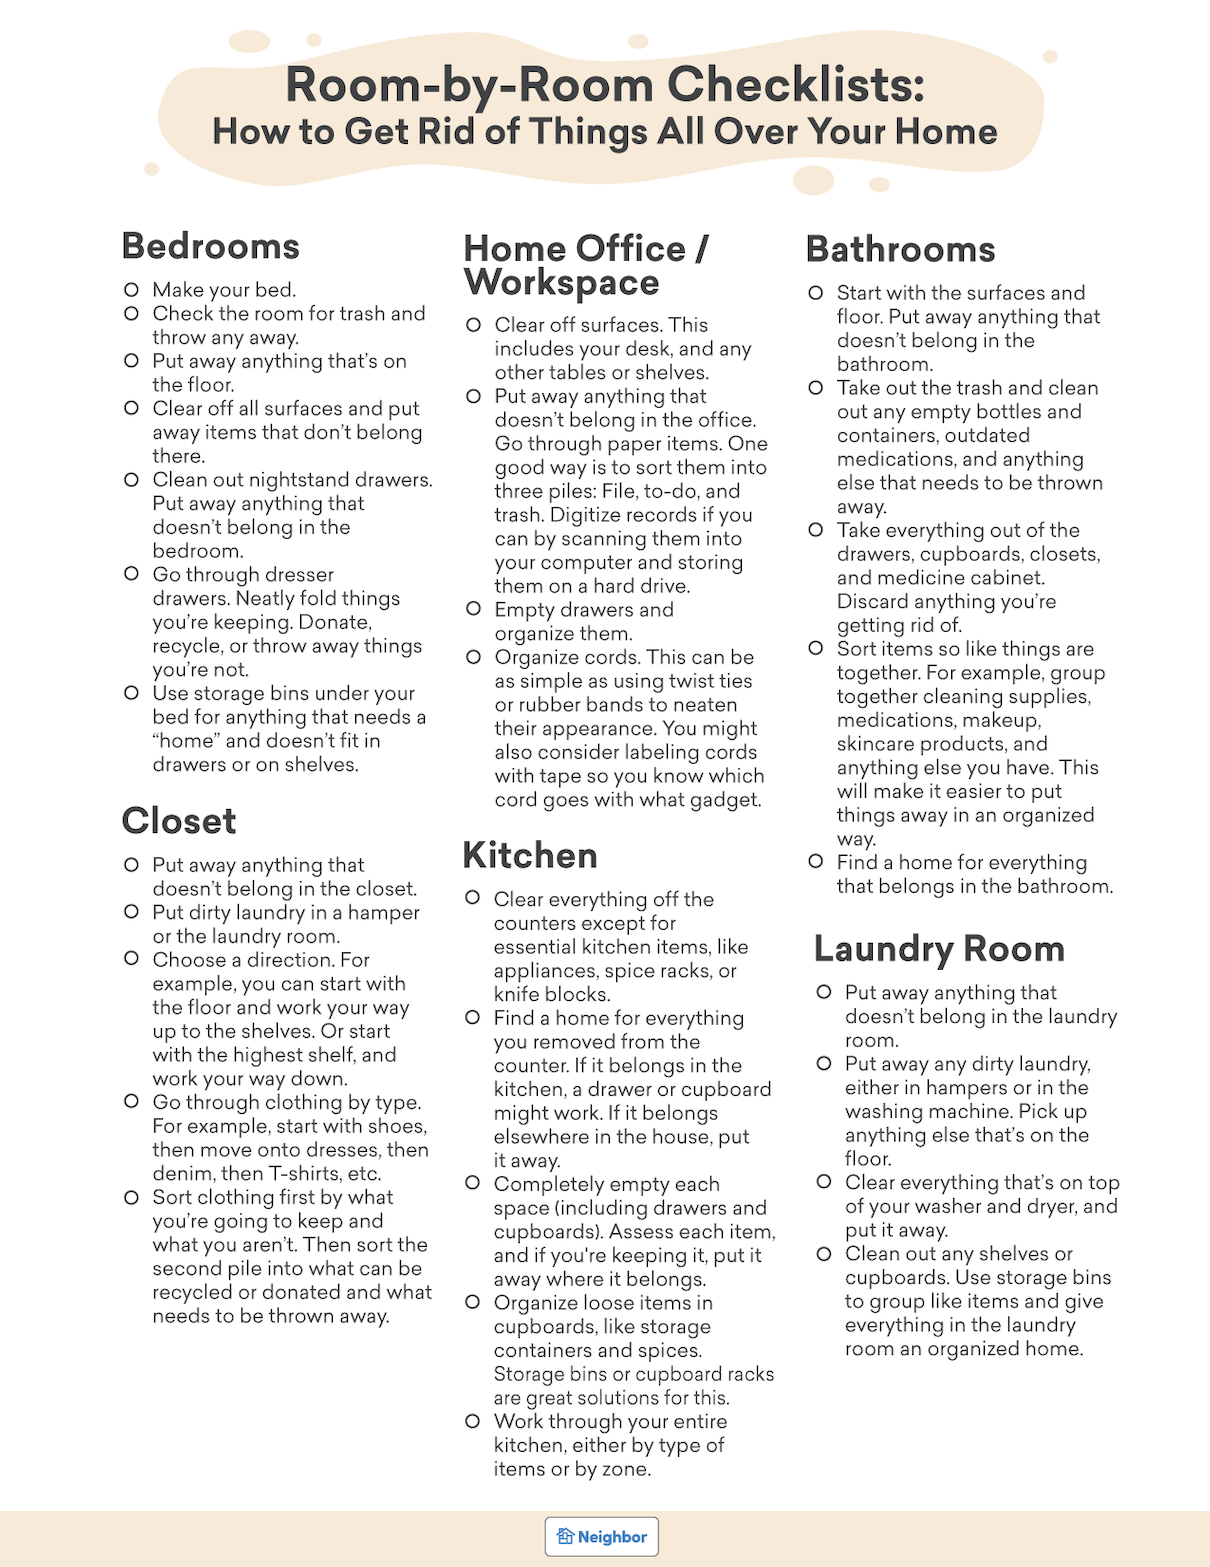 How to Get Rid of Things All Over Your Home Checklist